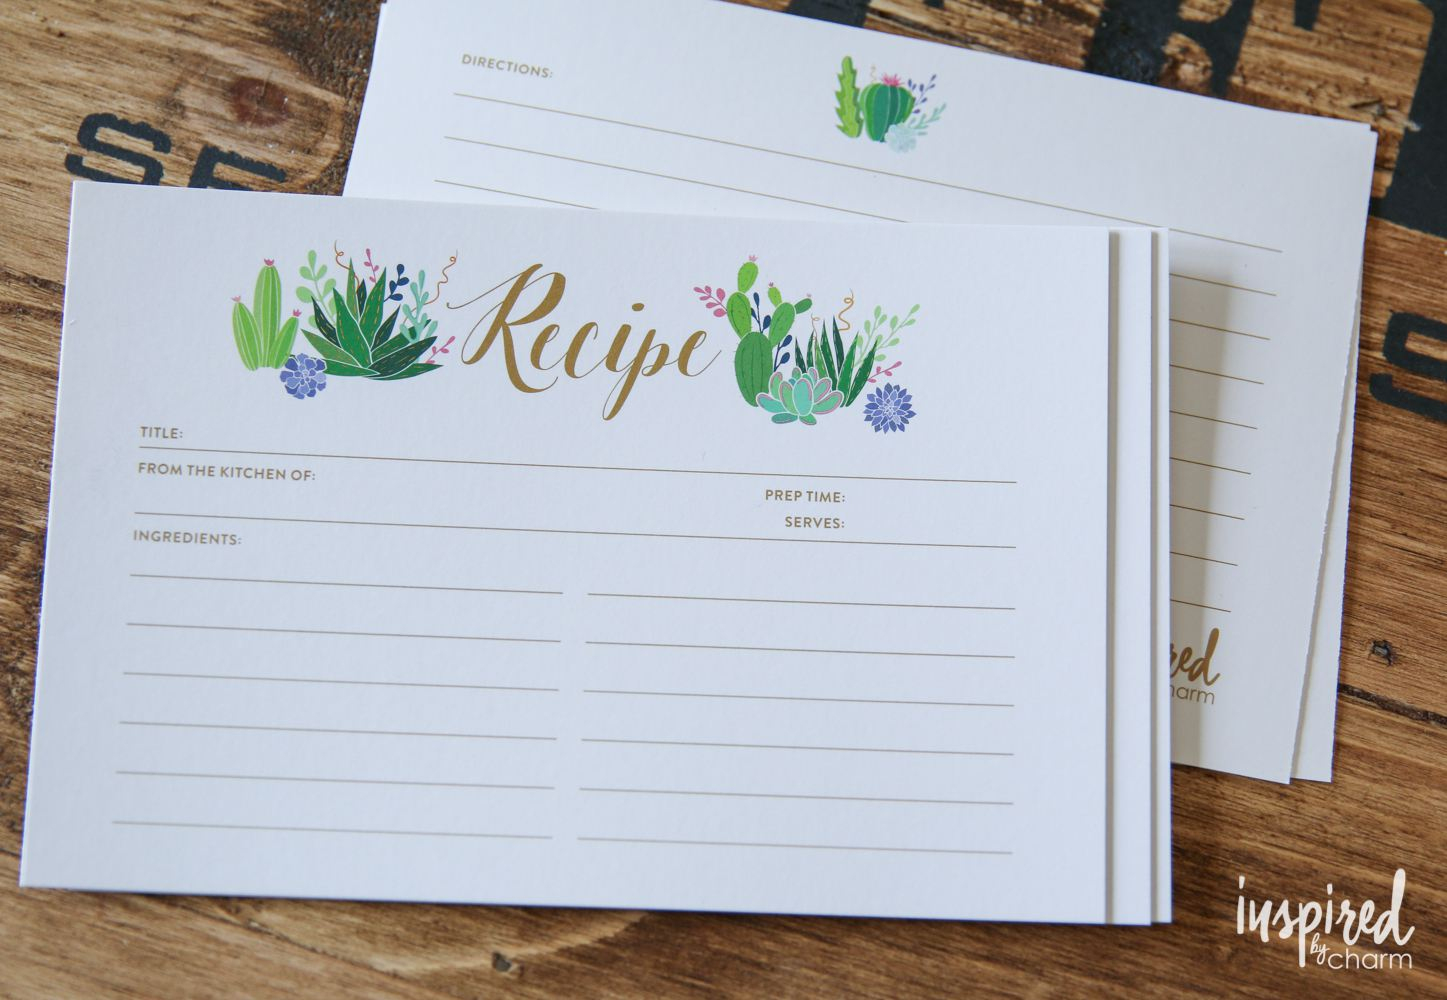 27 Sets Of Free, Printable Recipe Cards - Free Printable Recipe Cards